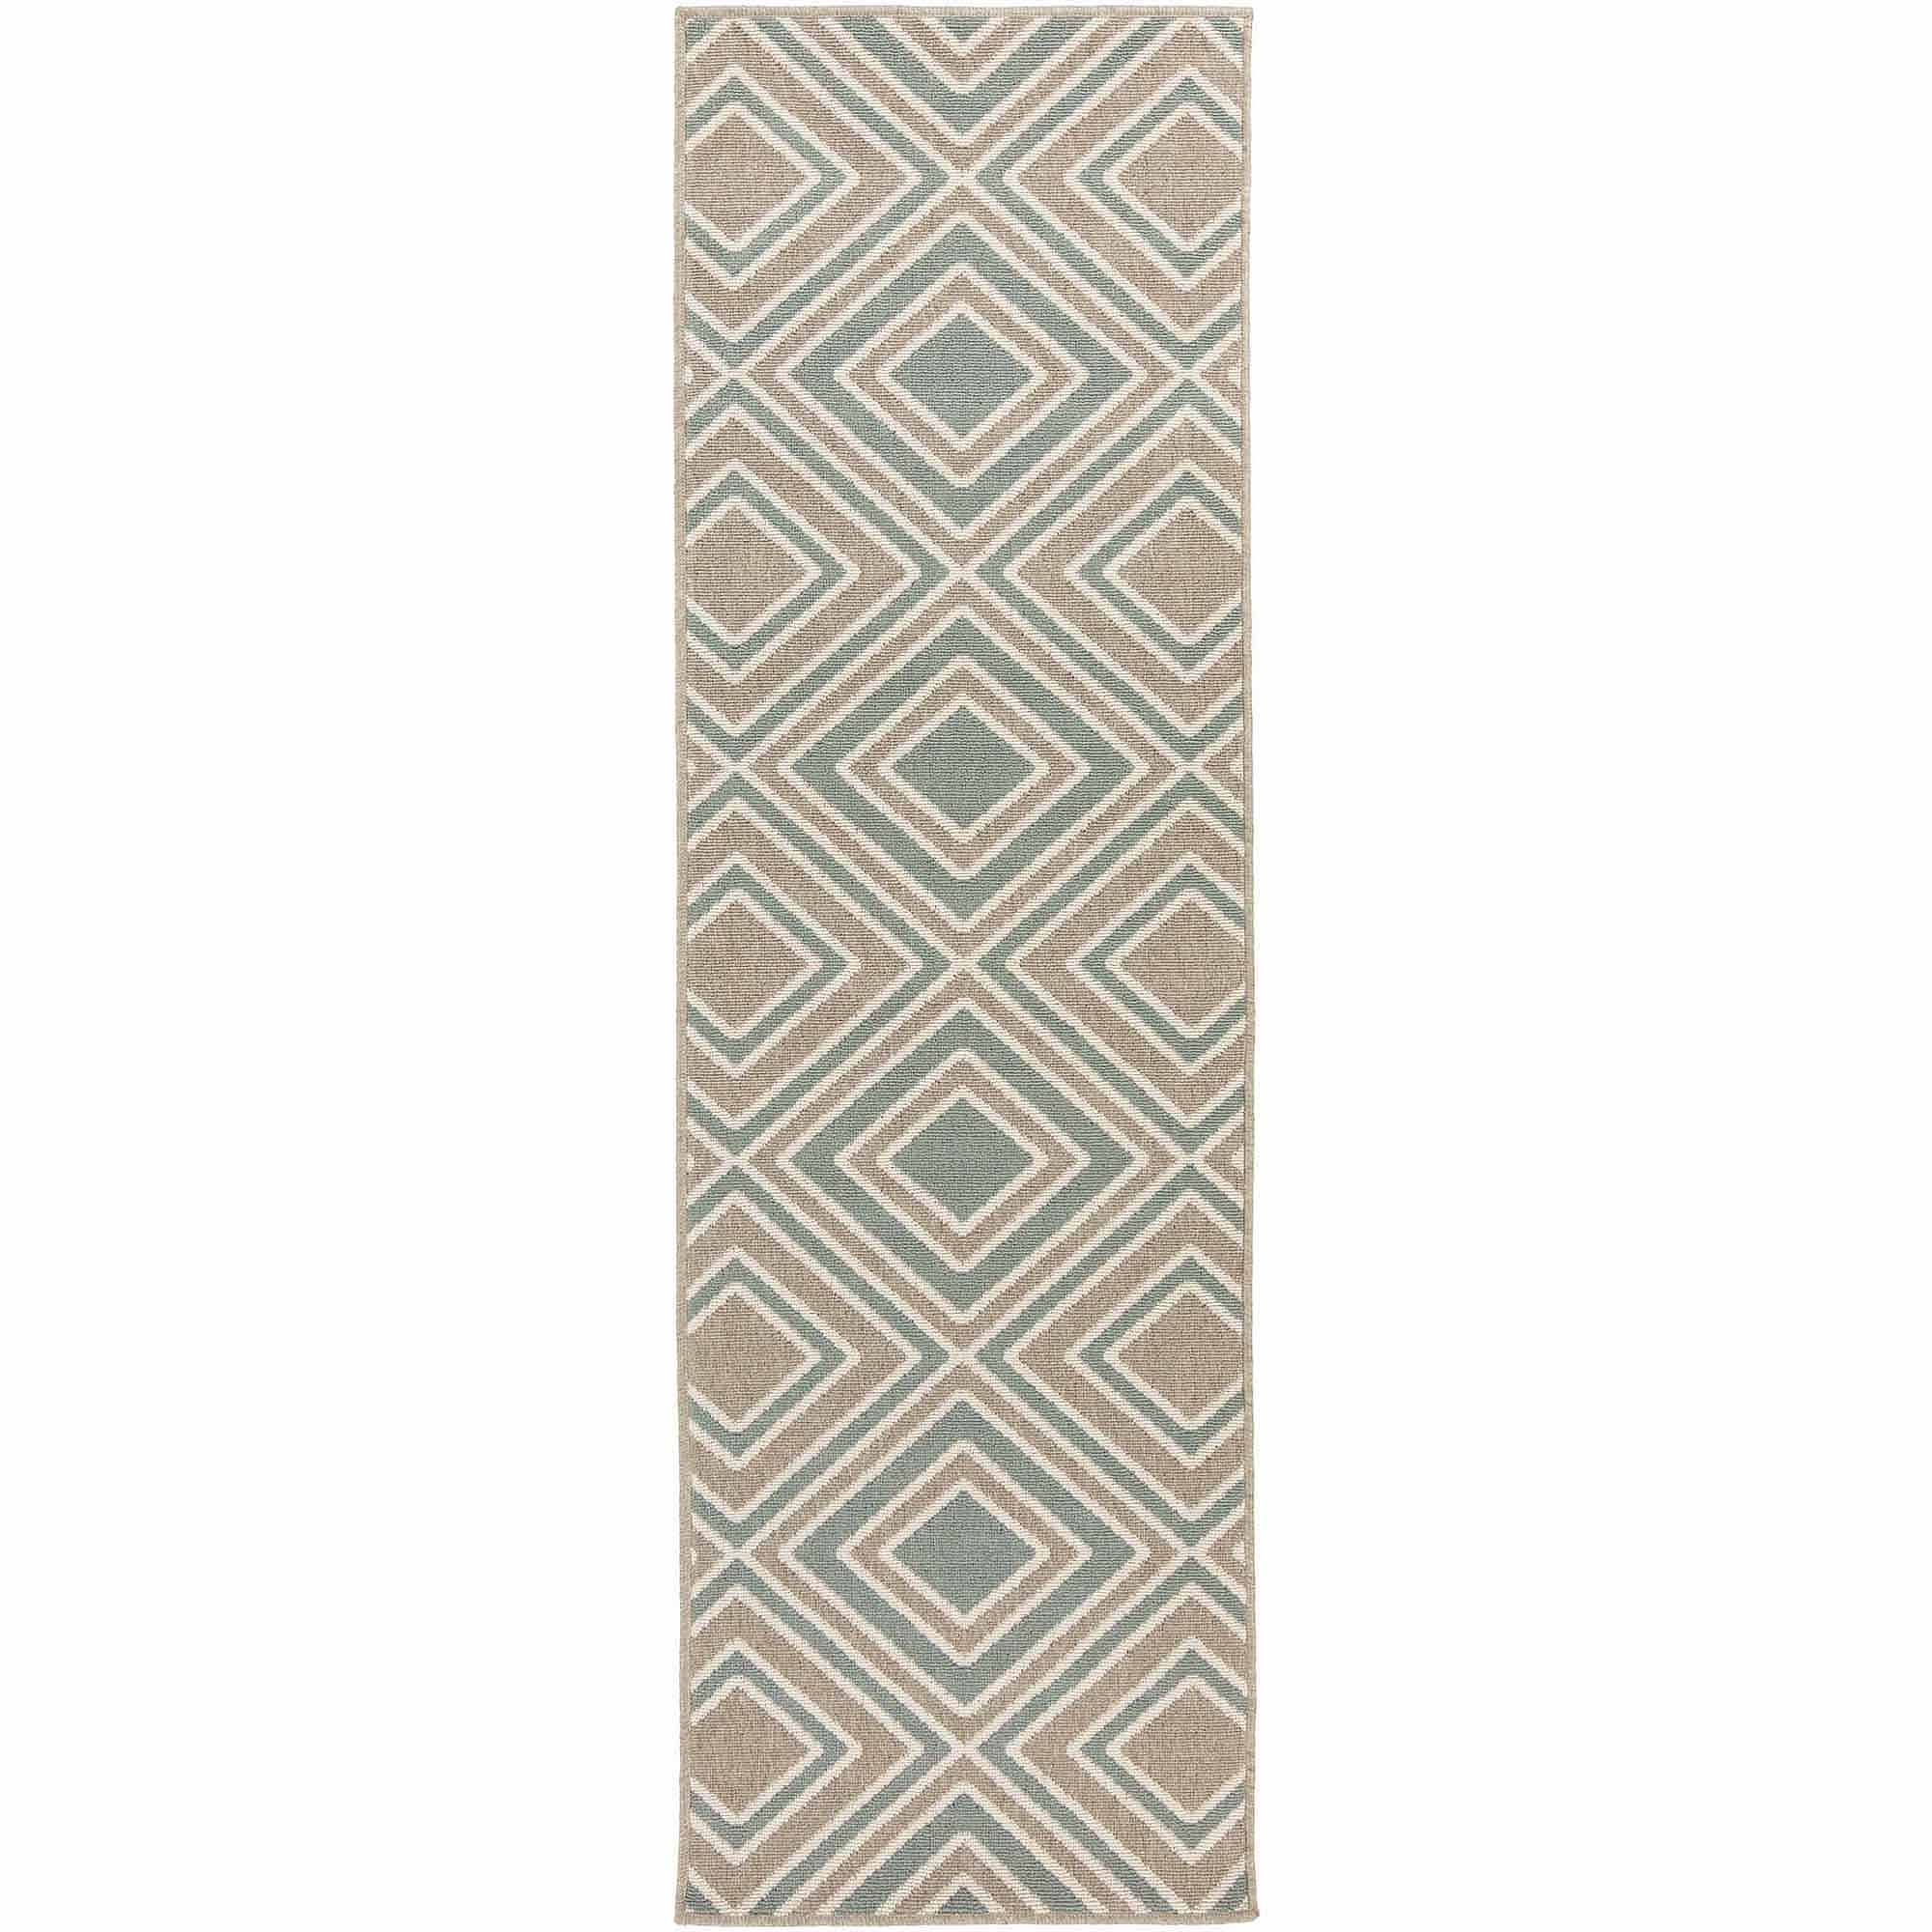 Art of Knot Coronado Machine Made Medallion Scroll Indoor/Outdoor Runner, Taupe